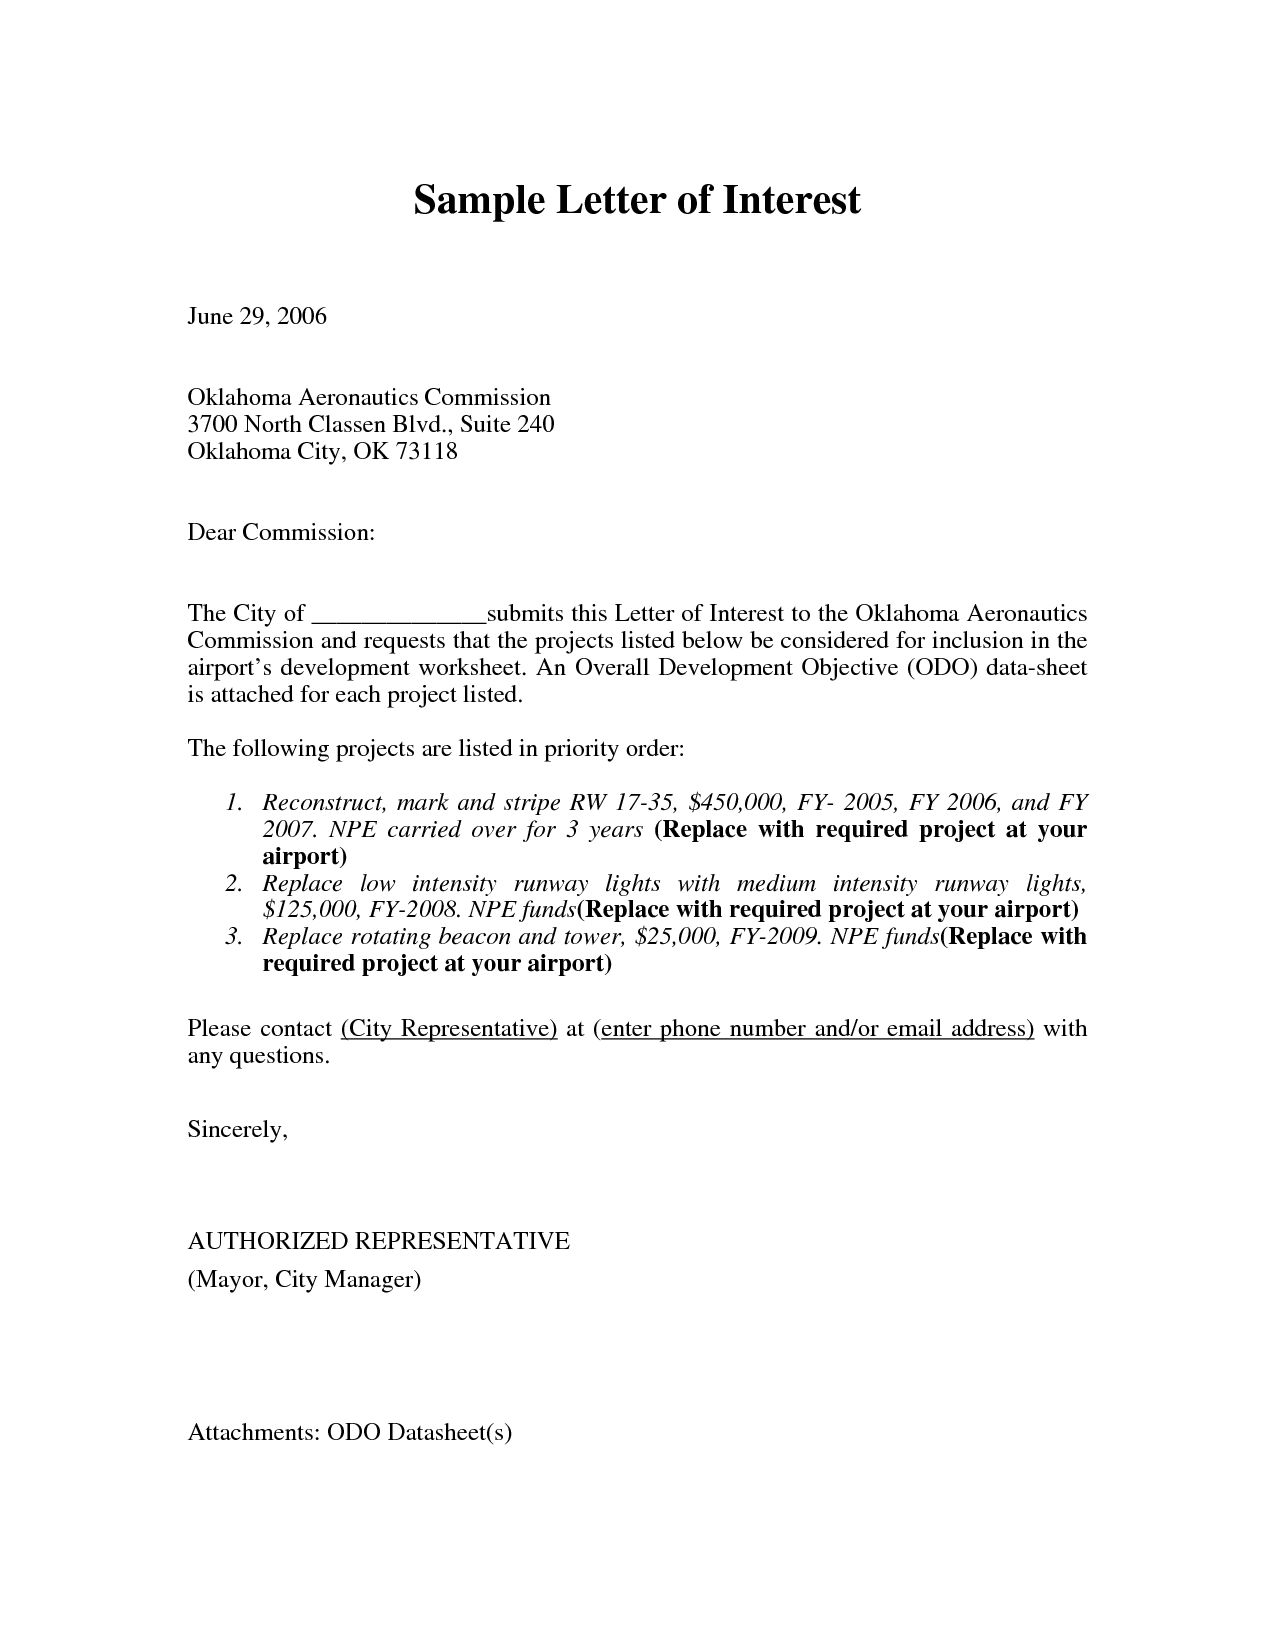 resume letter of interest - April.onthemarch.co